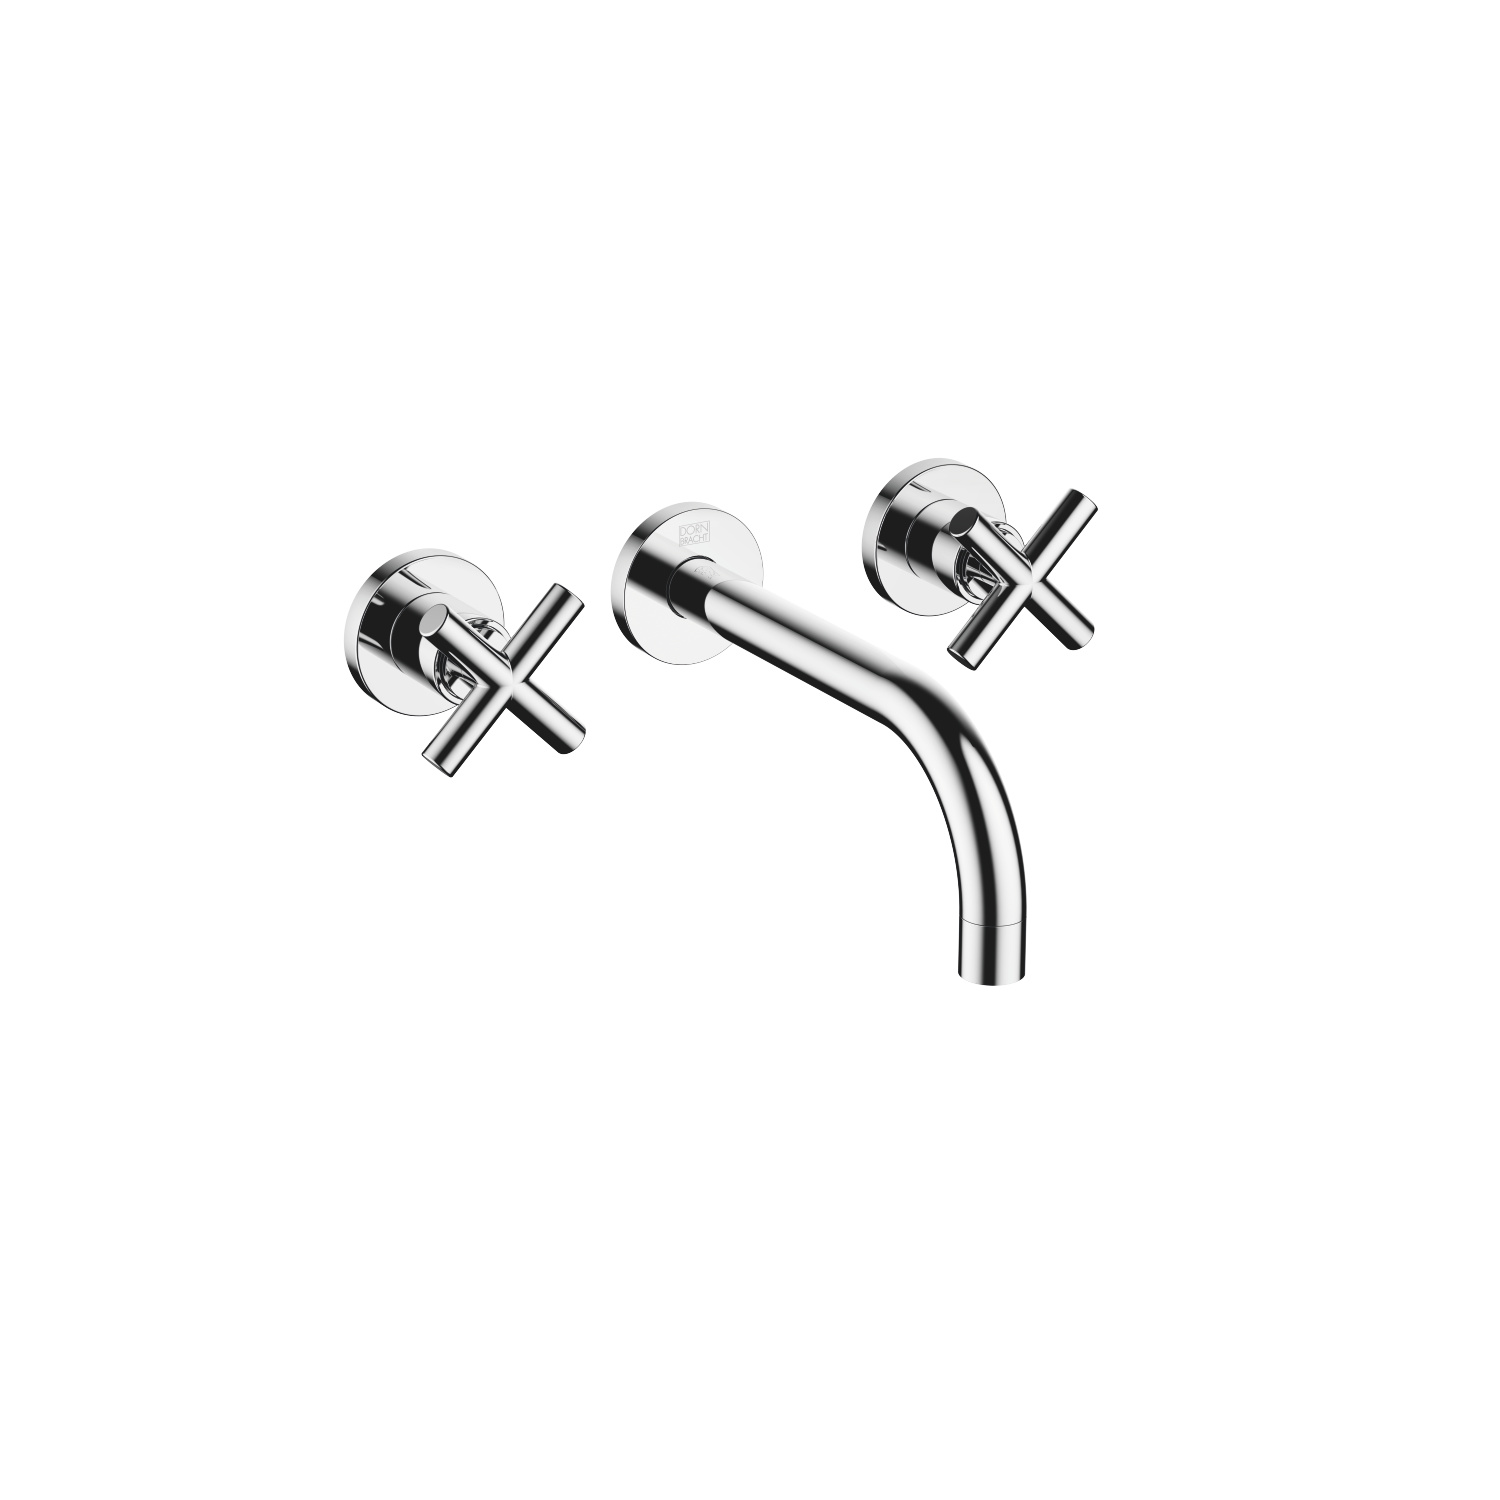 Wall-mounted basin mixer without pop-up waste - polished chrome